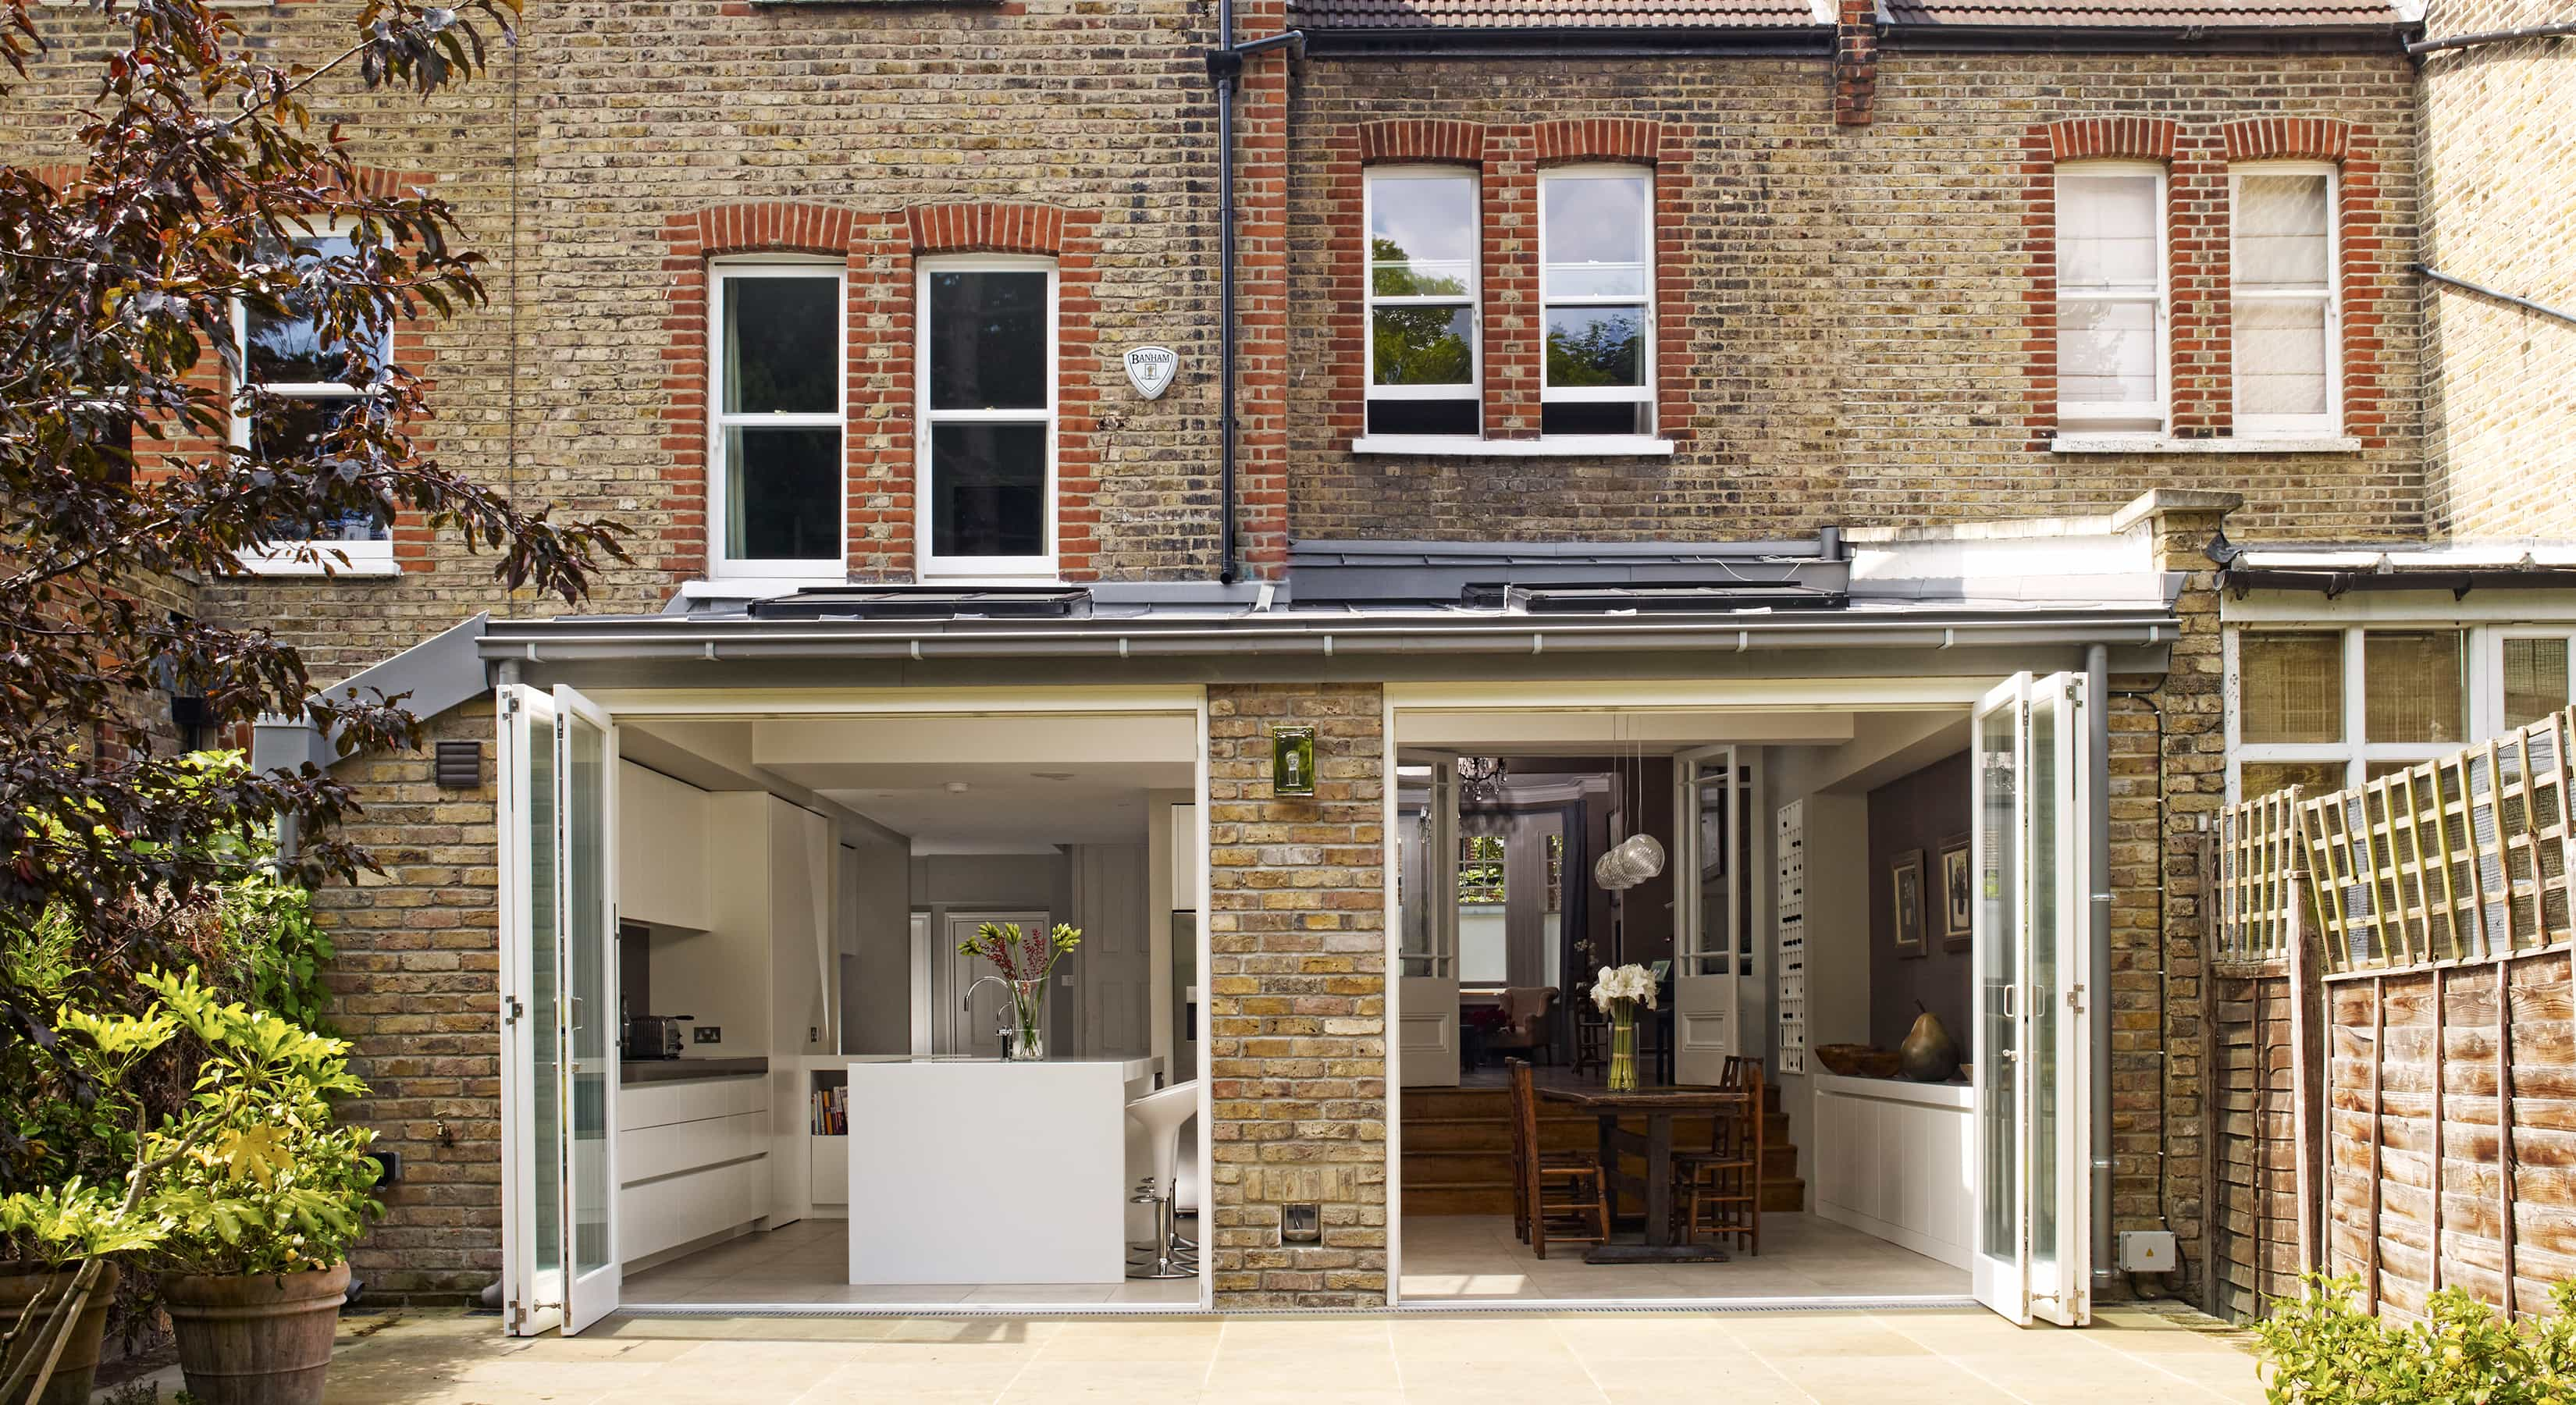 Exterior of the Esmund kitchen extension with by-fold doors open